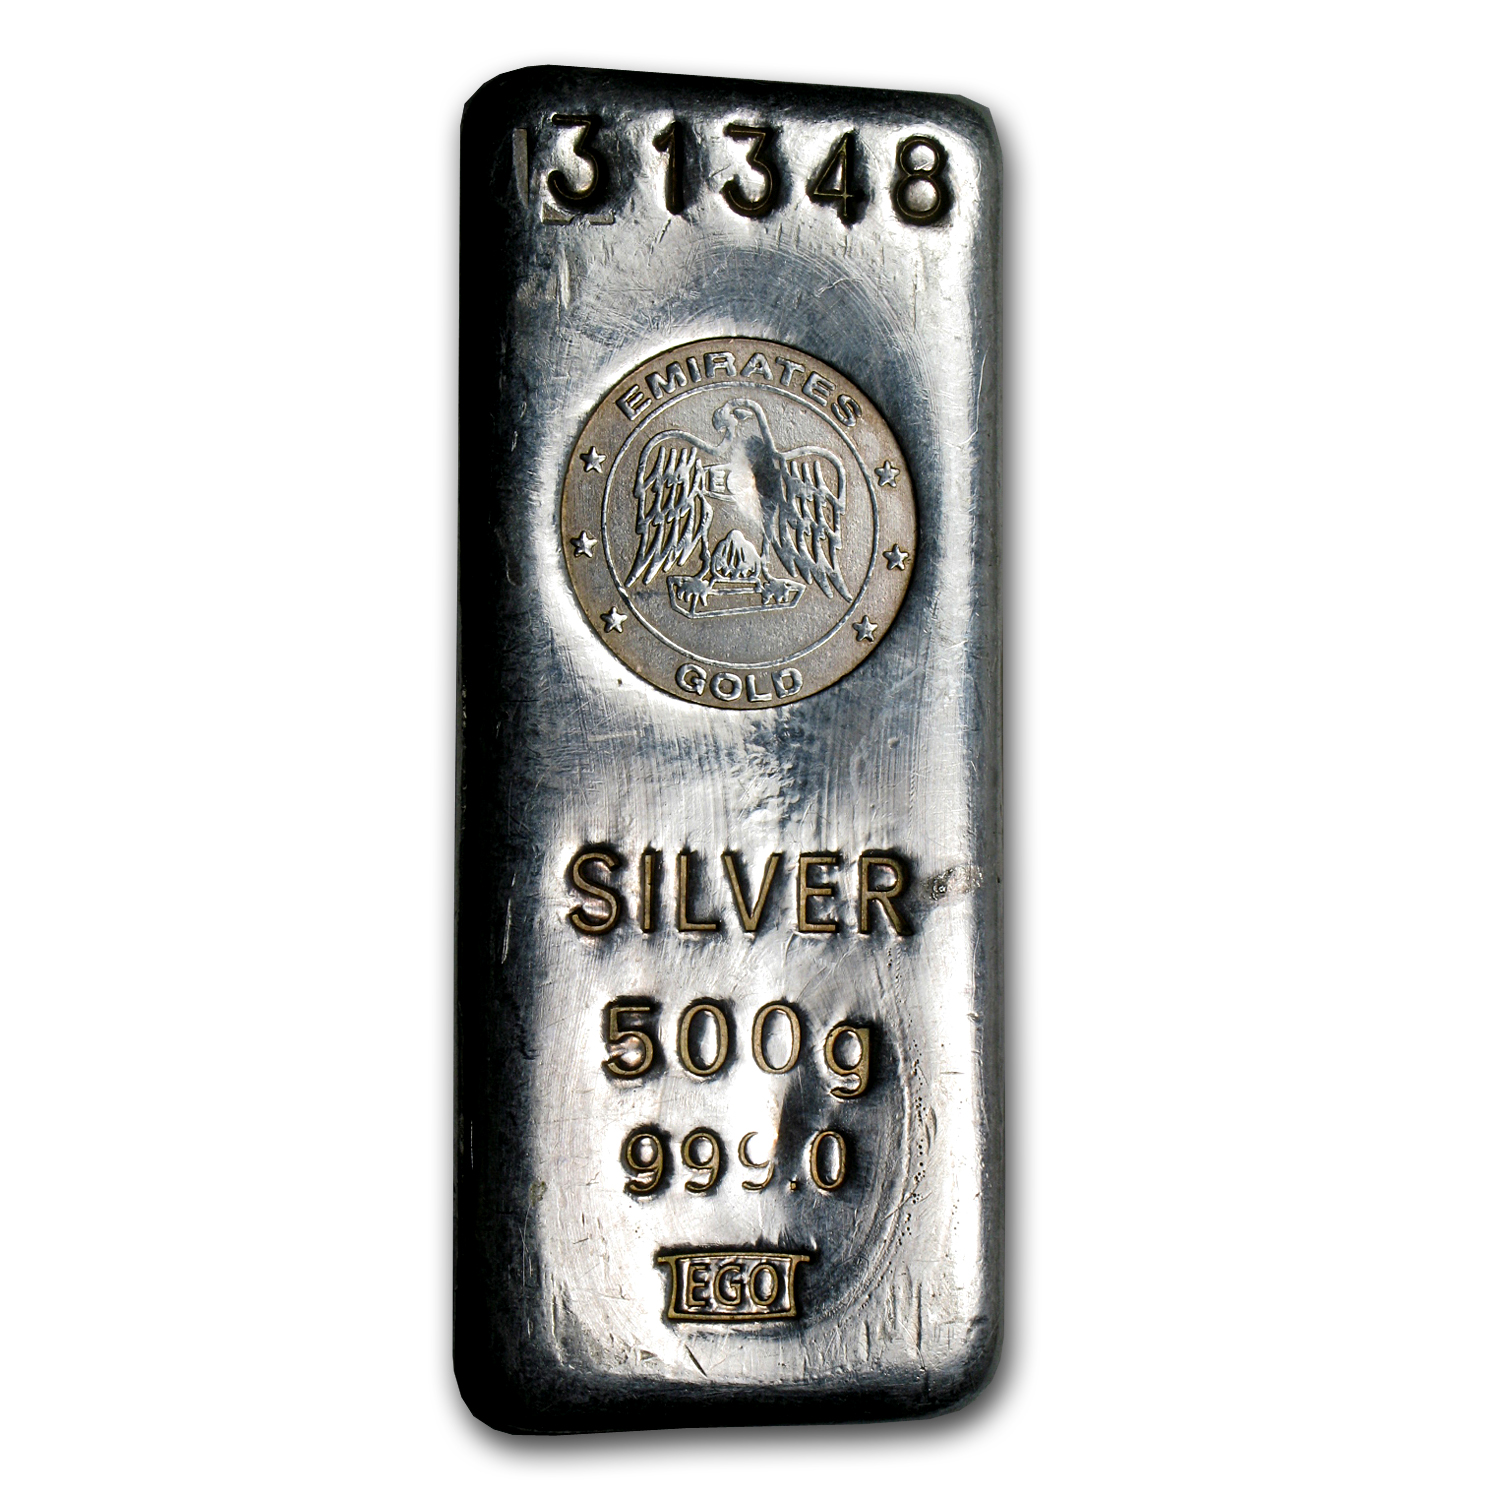 500 gram Silver Bar - Emirates Gold